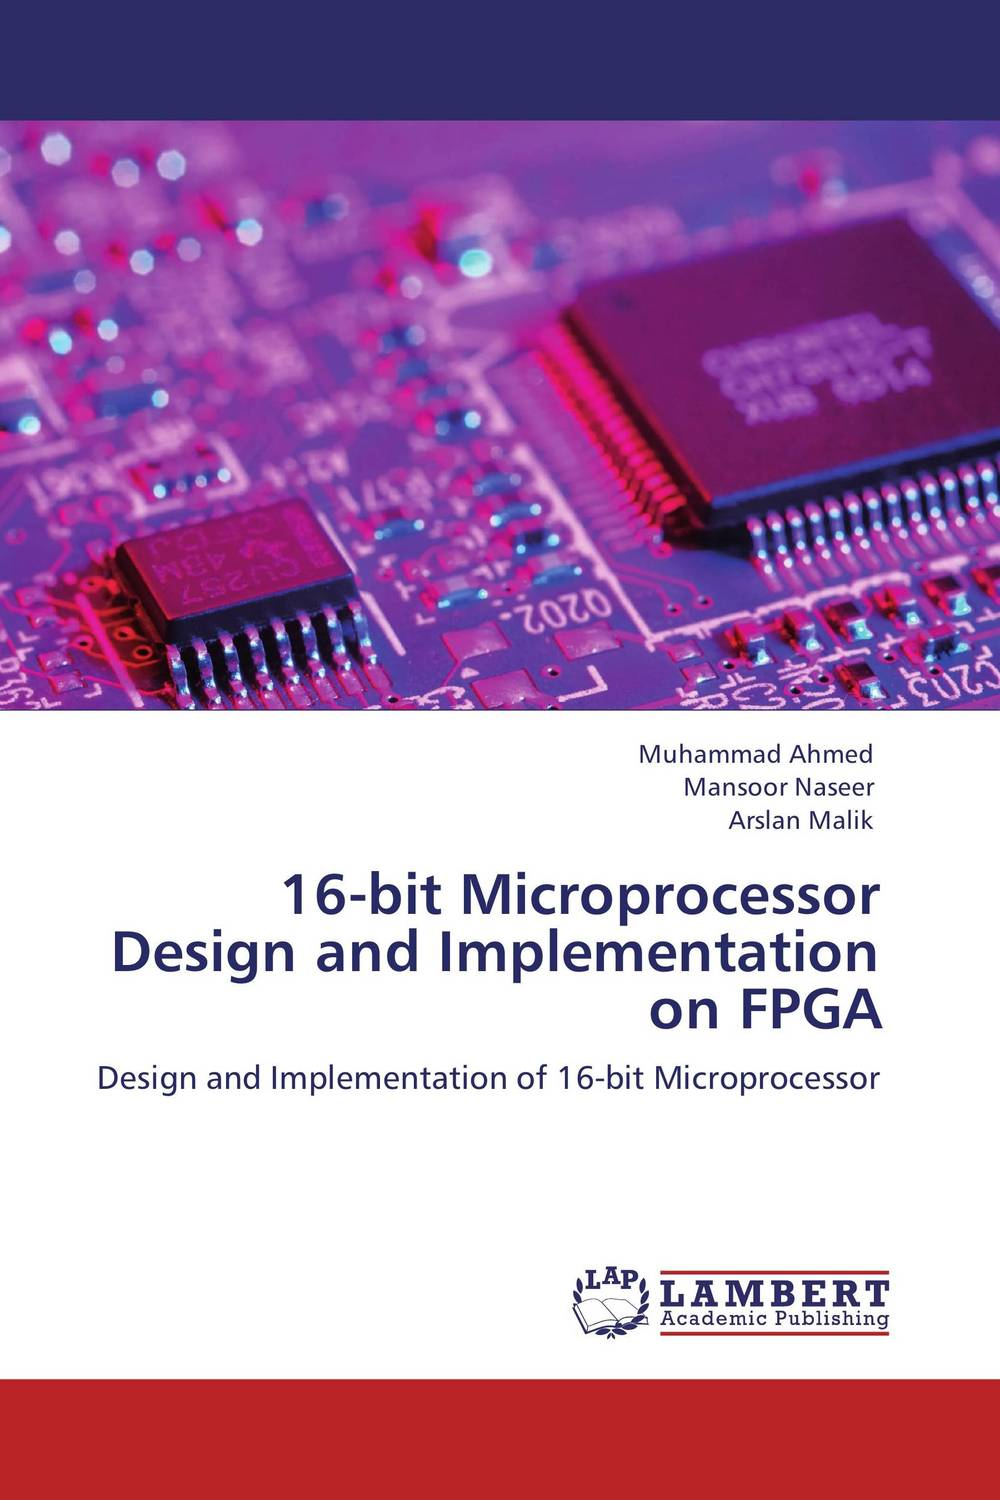 16-bit Microprocessor Design and Implementation on FPGA fpga implementation of reed solomon code